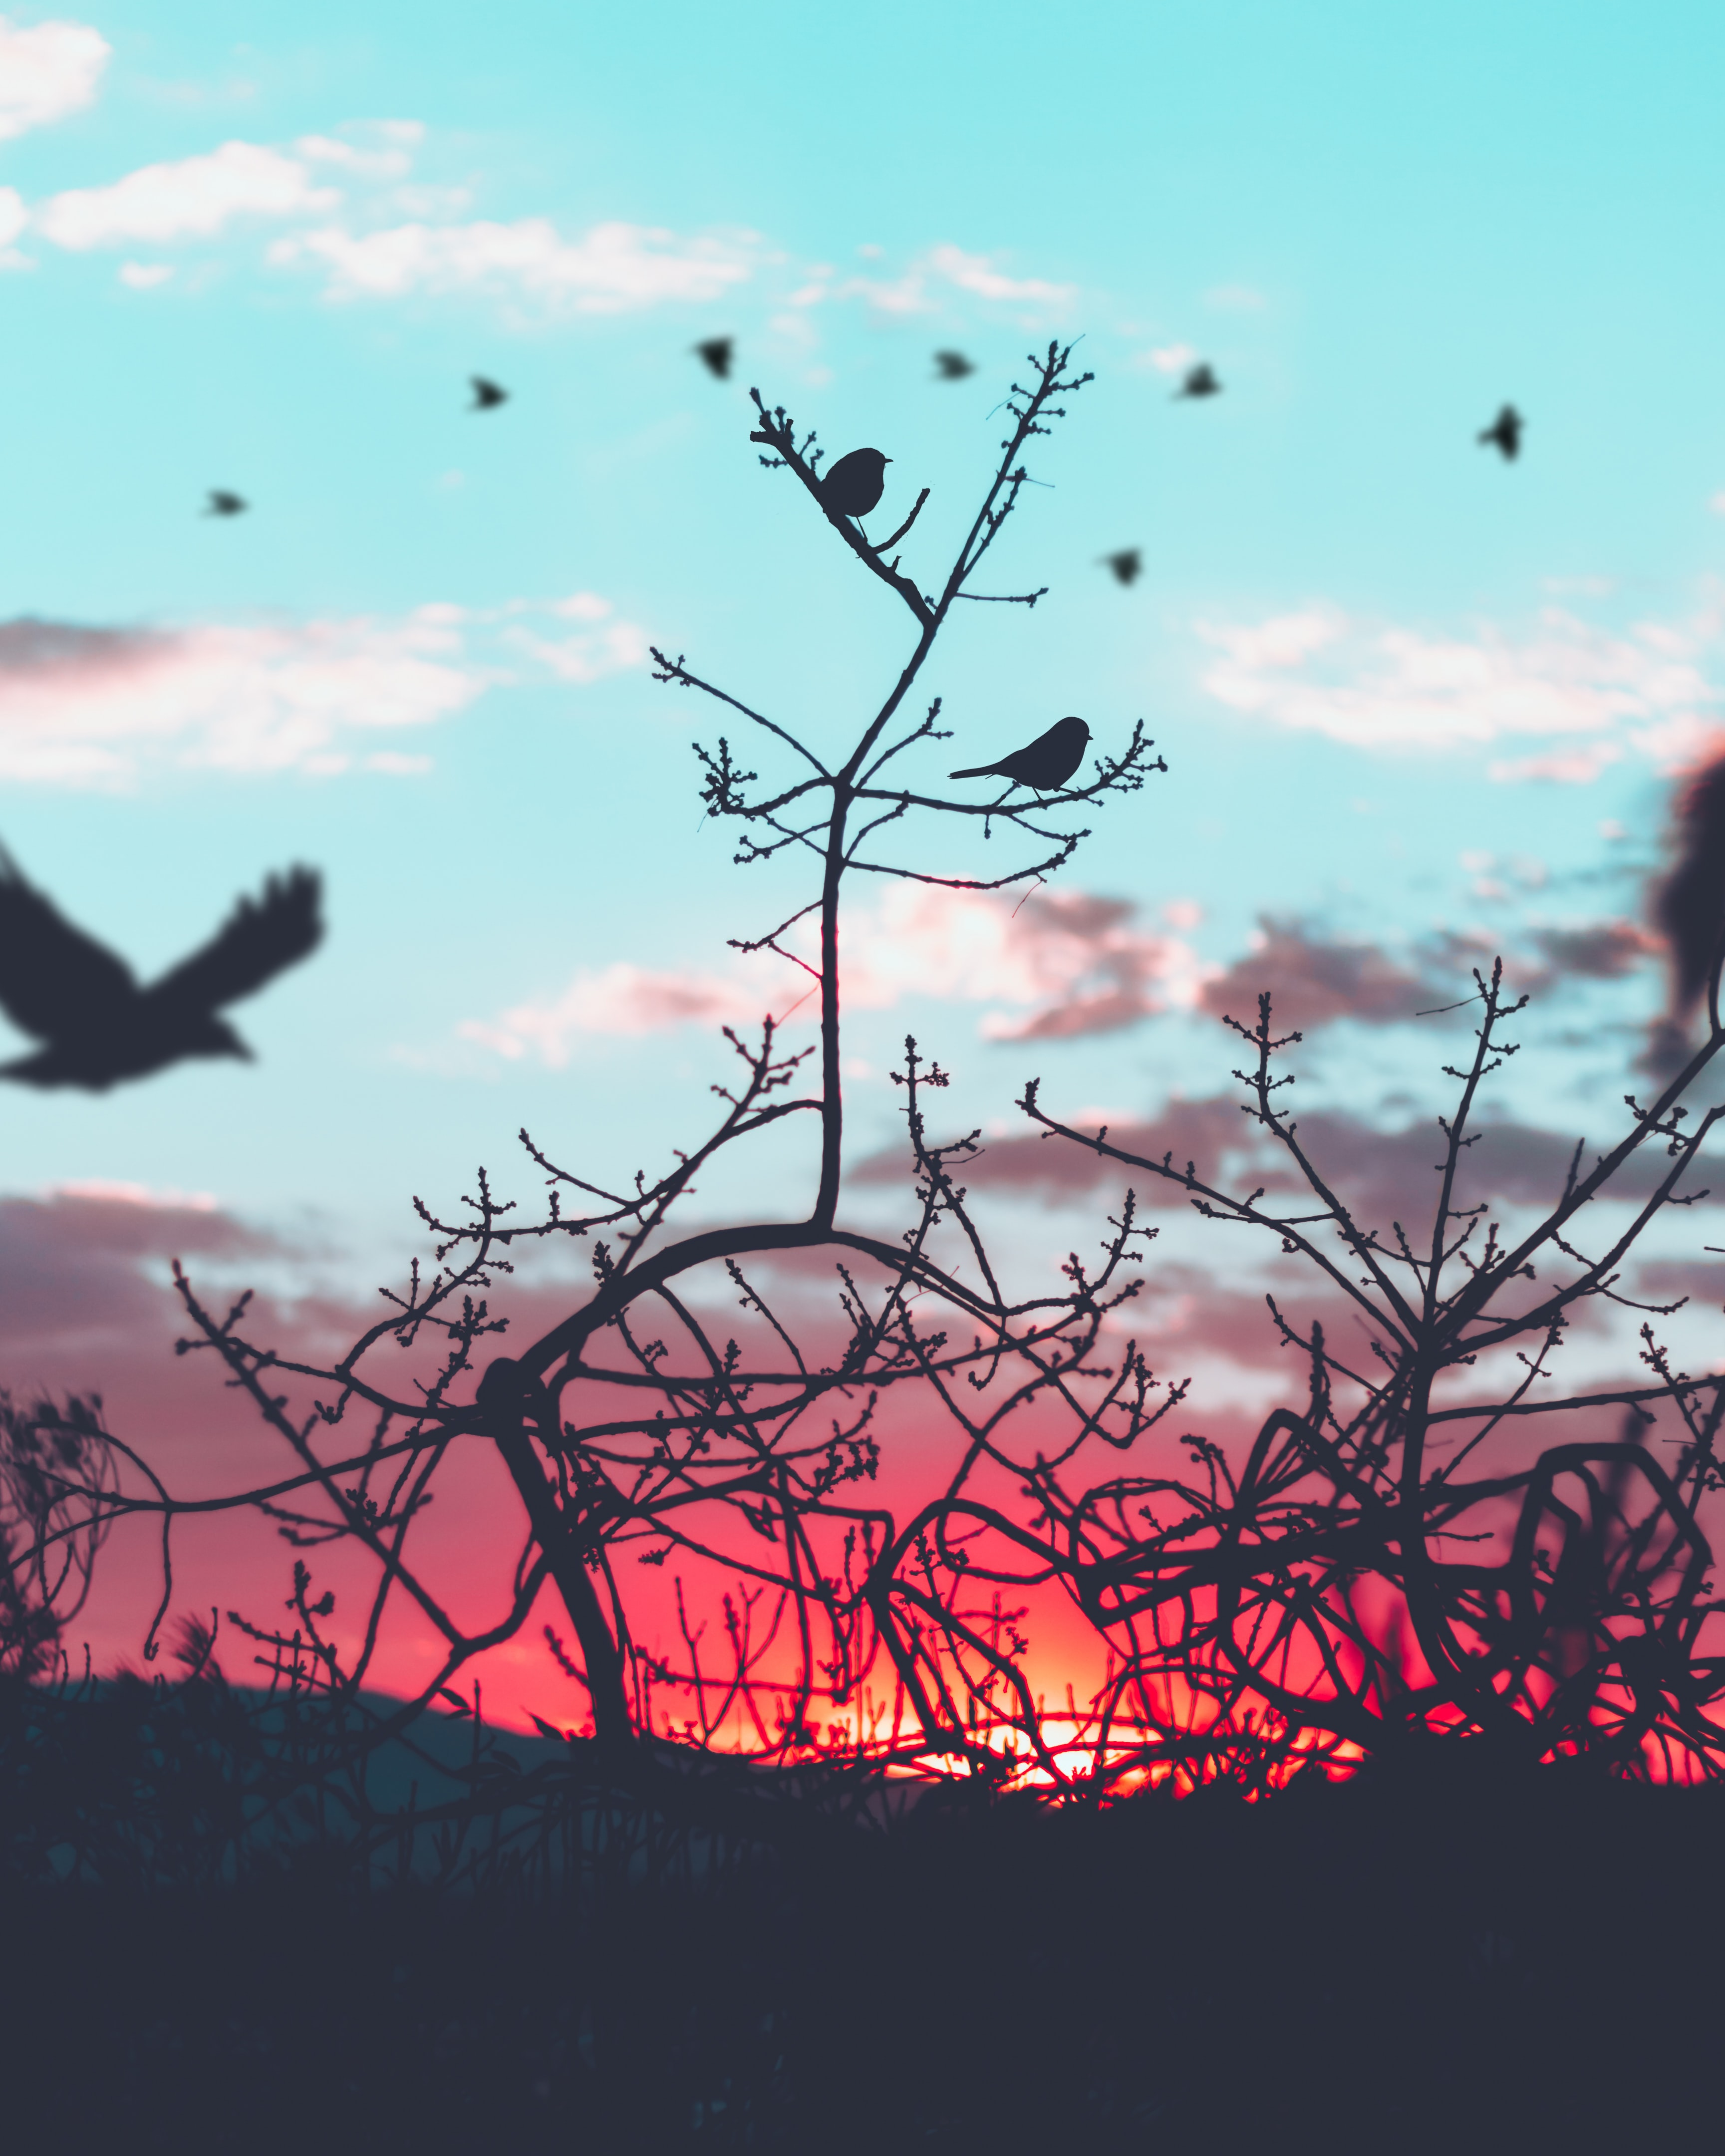 Silhouette birds perched on tree branch, backed by a light blue sky with pick, sun-kissed clouds at sunrise-or-sunset in Toluca